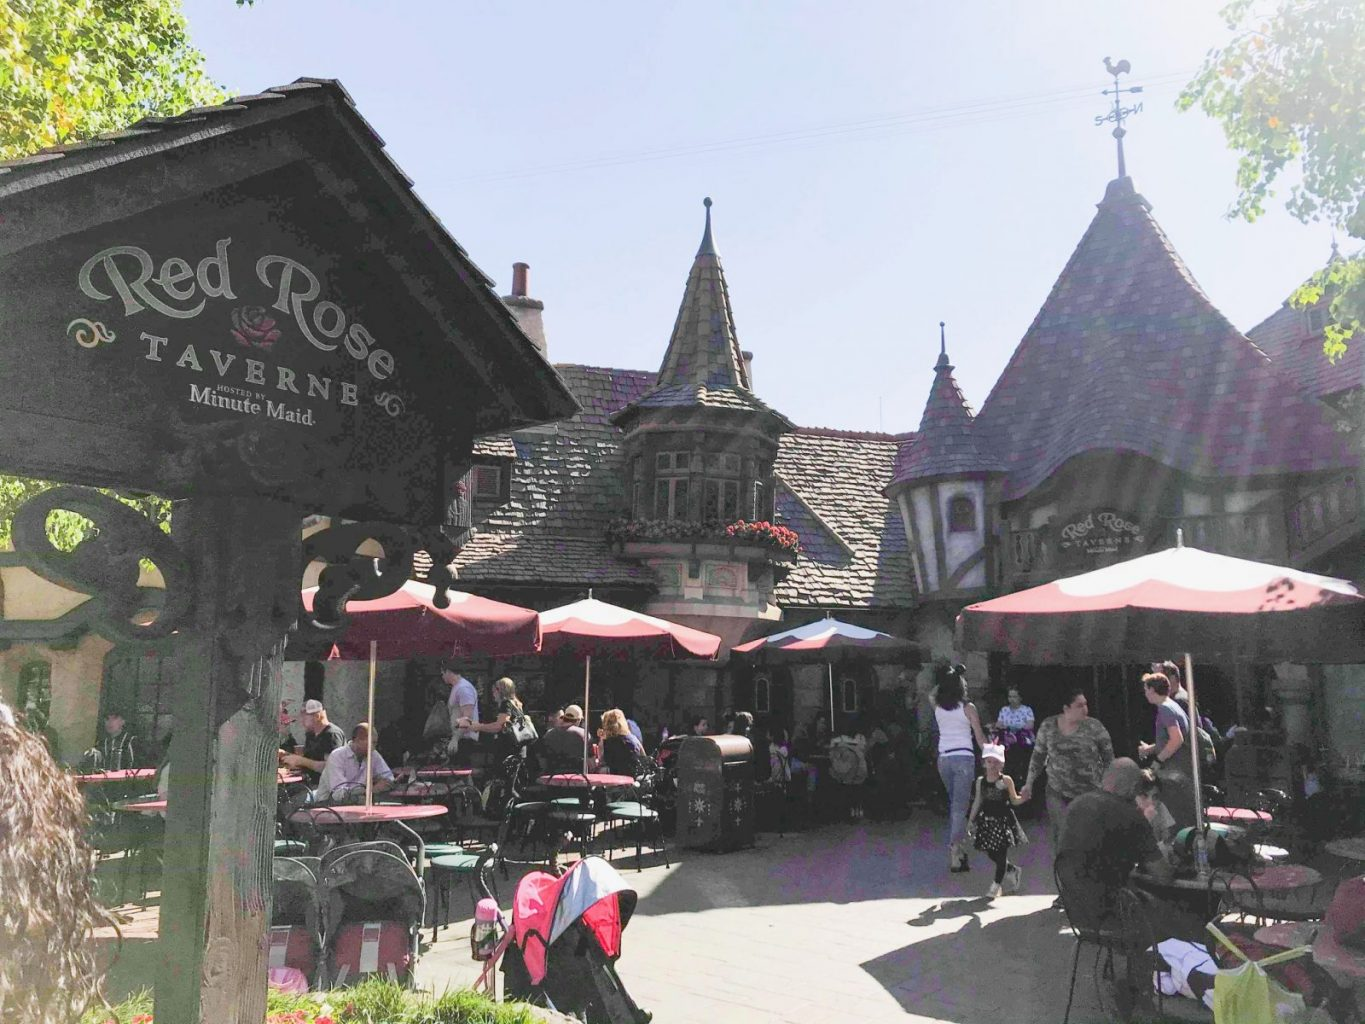 The outside of the Red Rose Taverne Disneyland restaurant